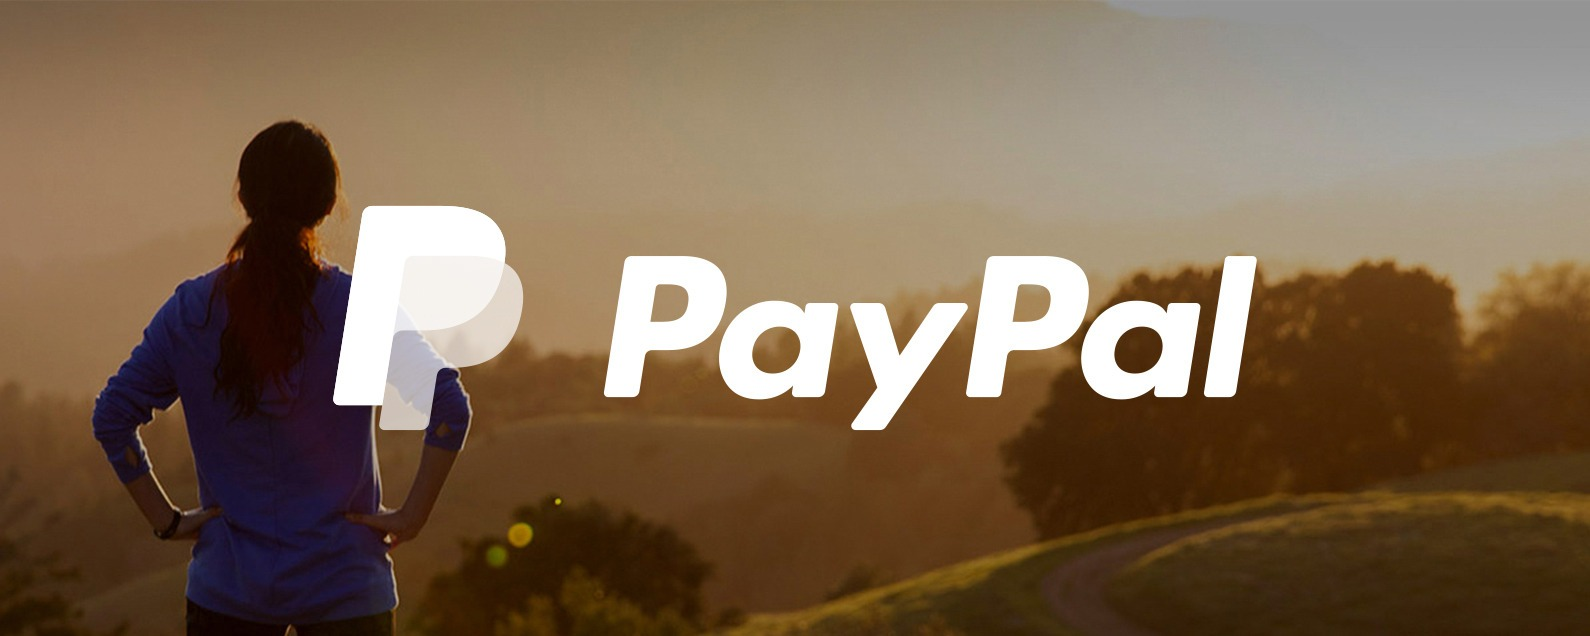 How to Get the PayPal App for iPad: iPhone Apps for iPad